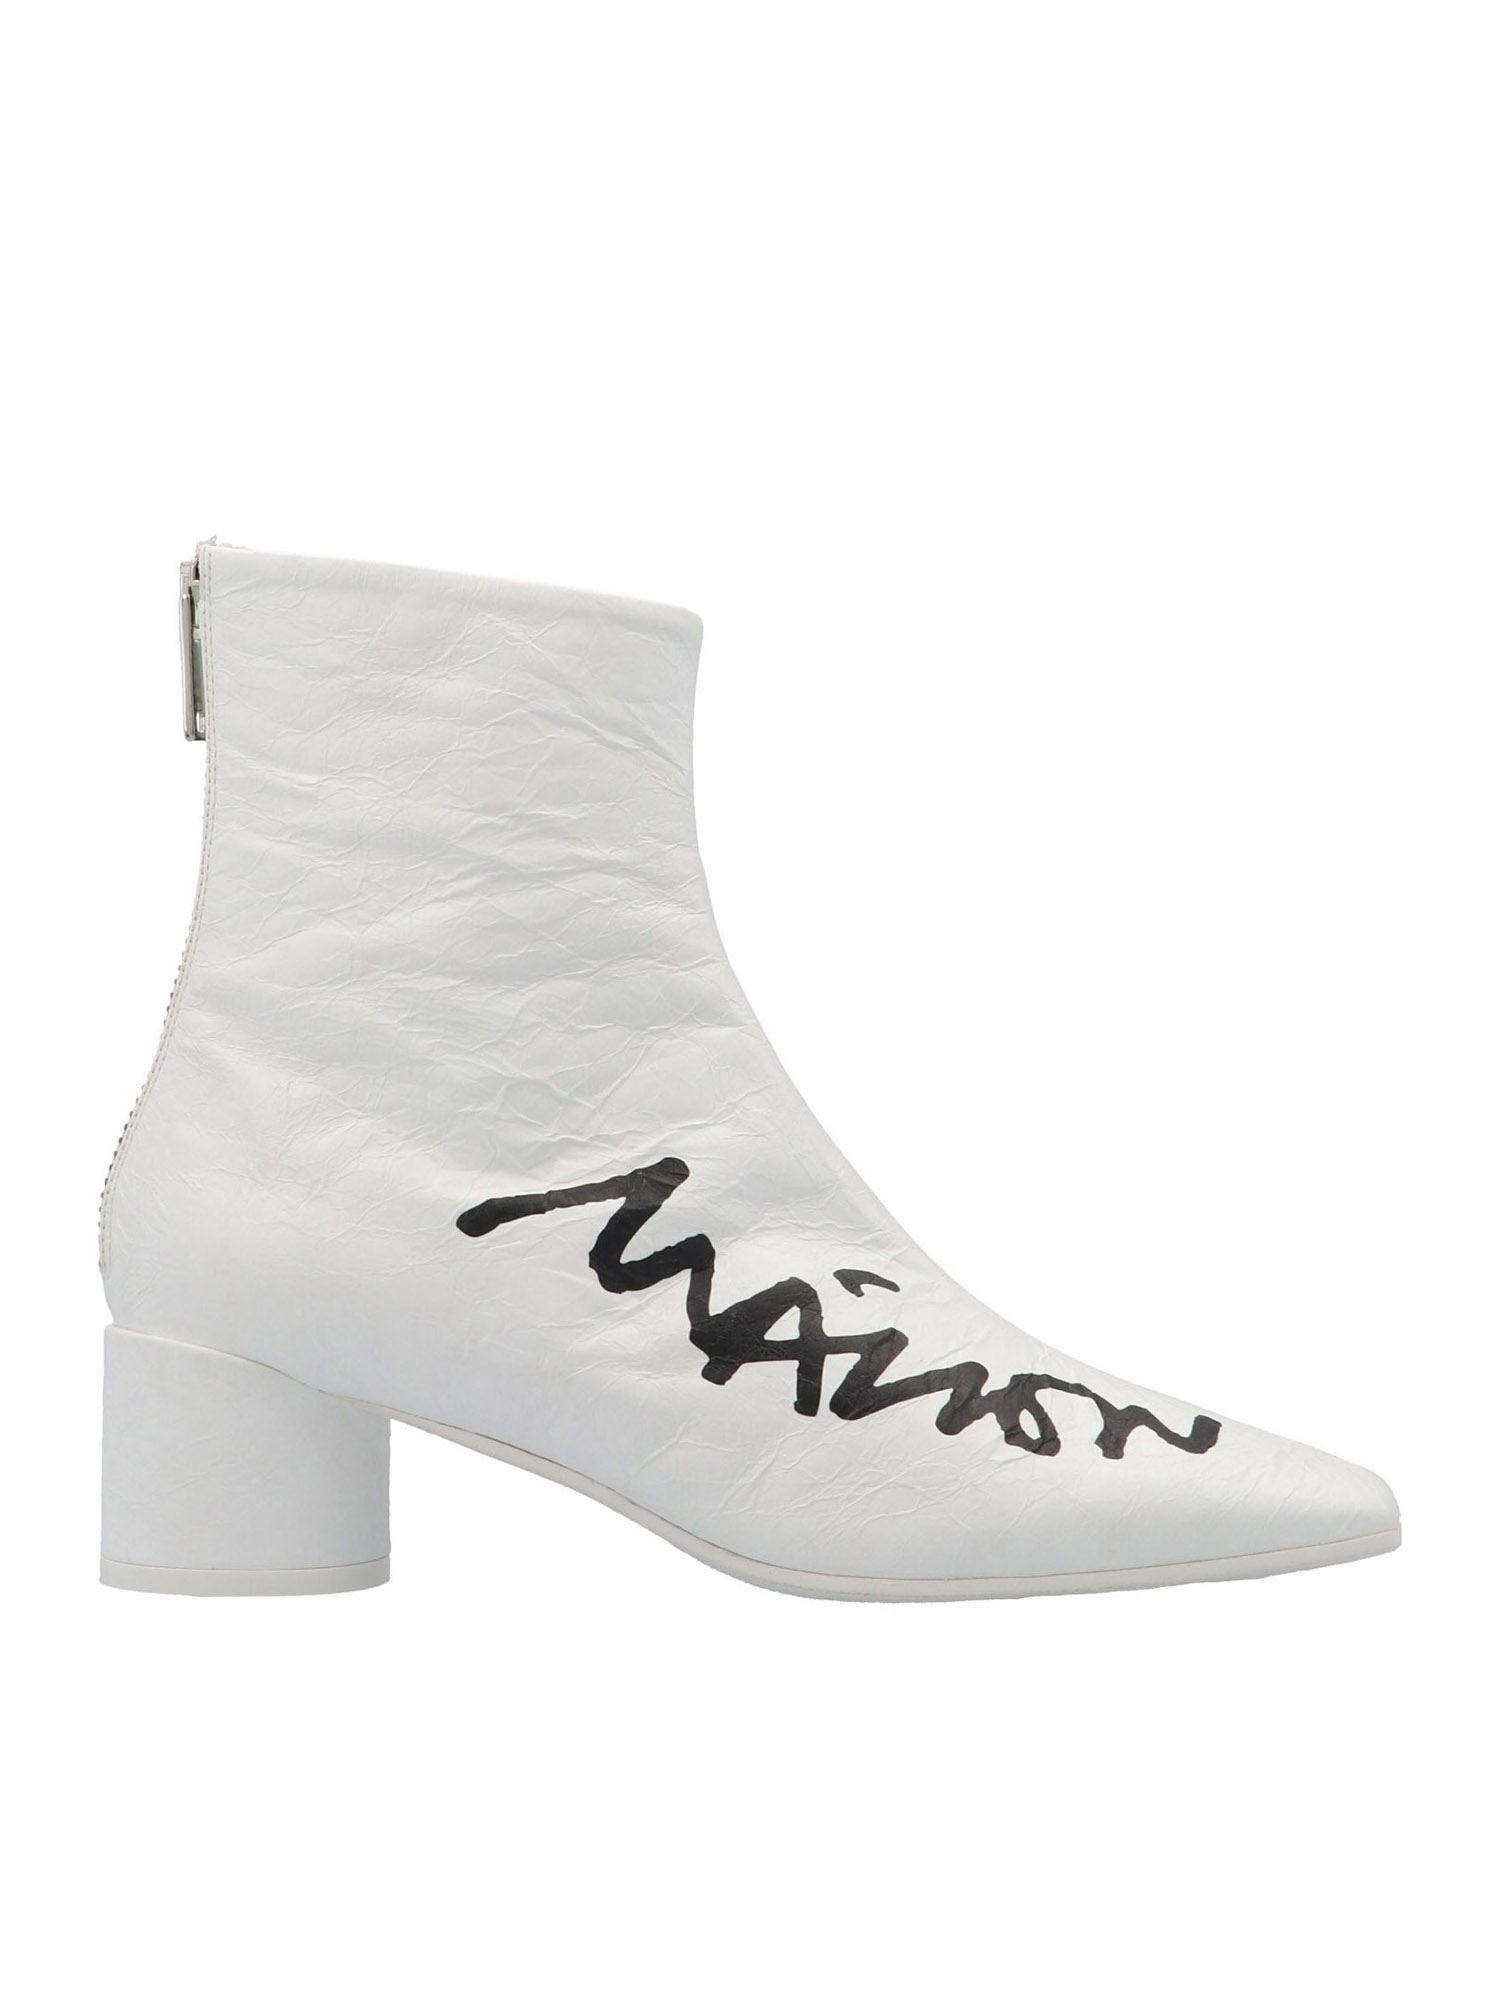 Mm6 Maison Margiela Shoes LOGO PRINT ANKLE BOOTS IN WHITE